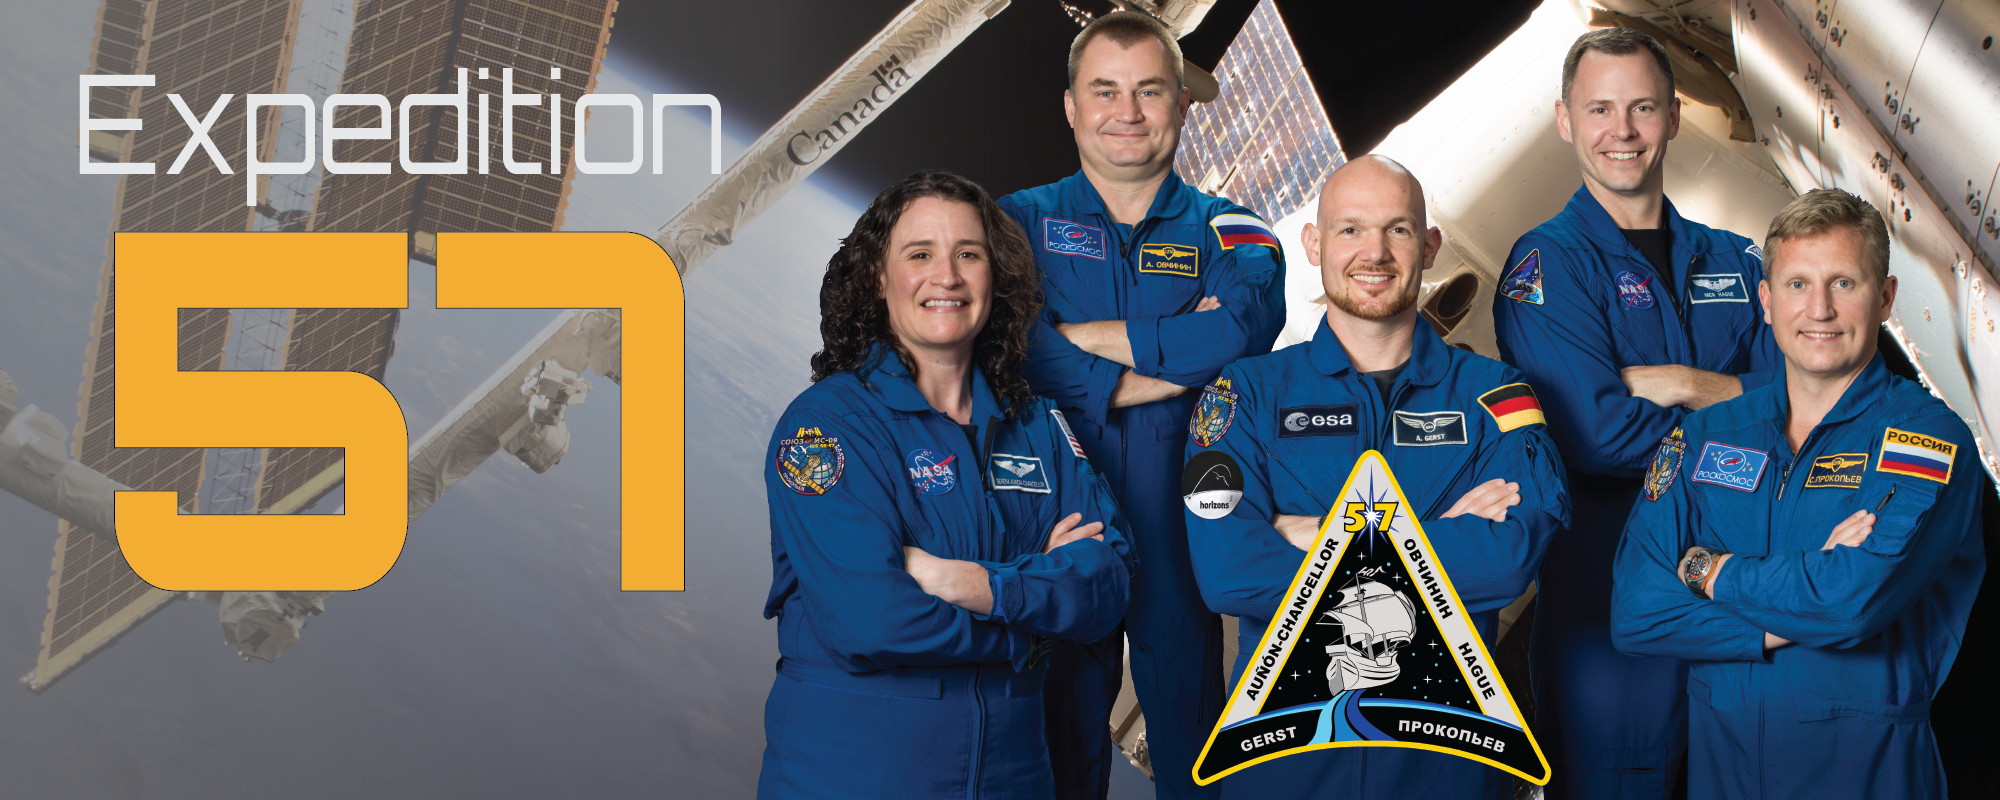 Expedition57Banner.png